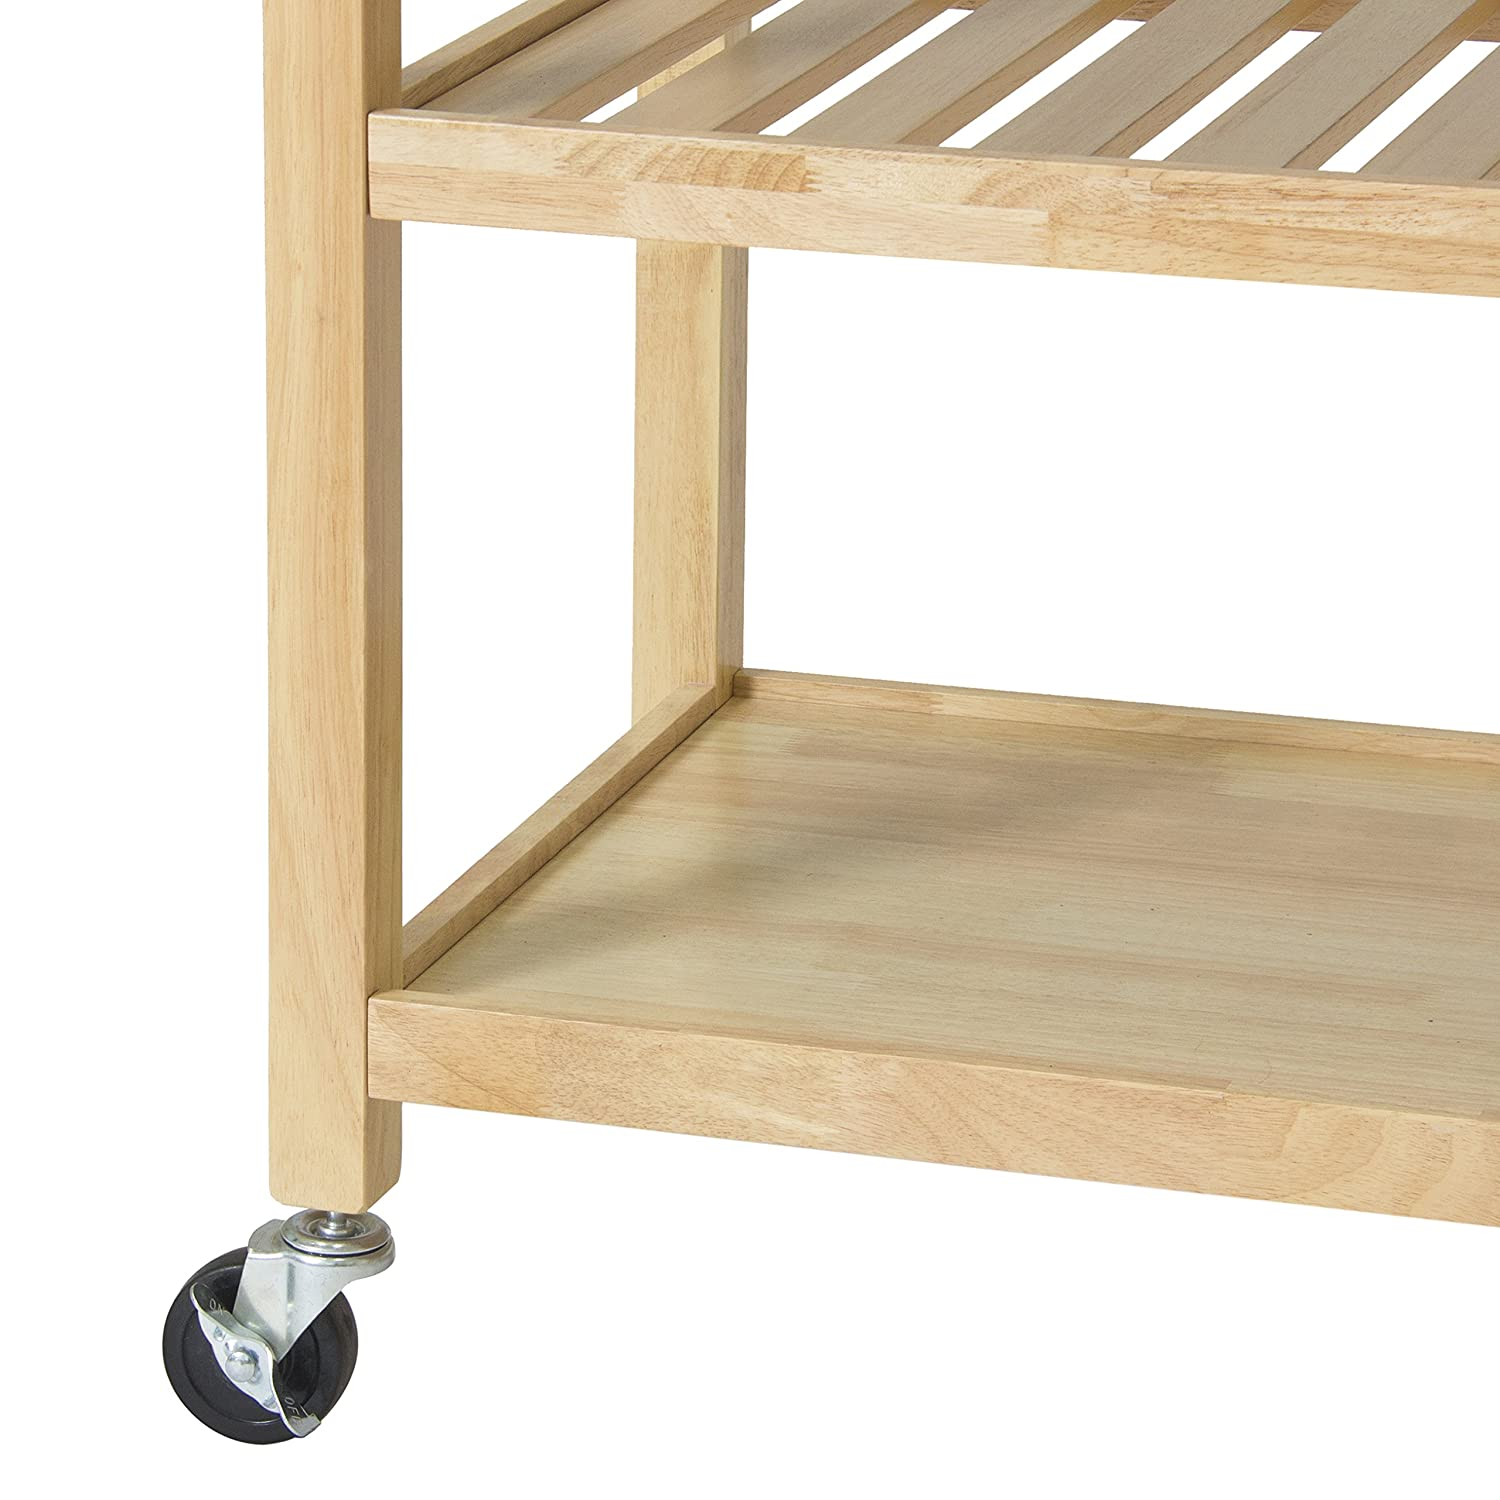 amazon com best choice products natural wood mobile kitchen amazon com best choice products natural wood mobile kitchen island utility cart with stainless steel top restaurant kitchen islands carts